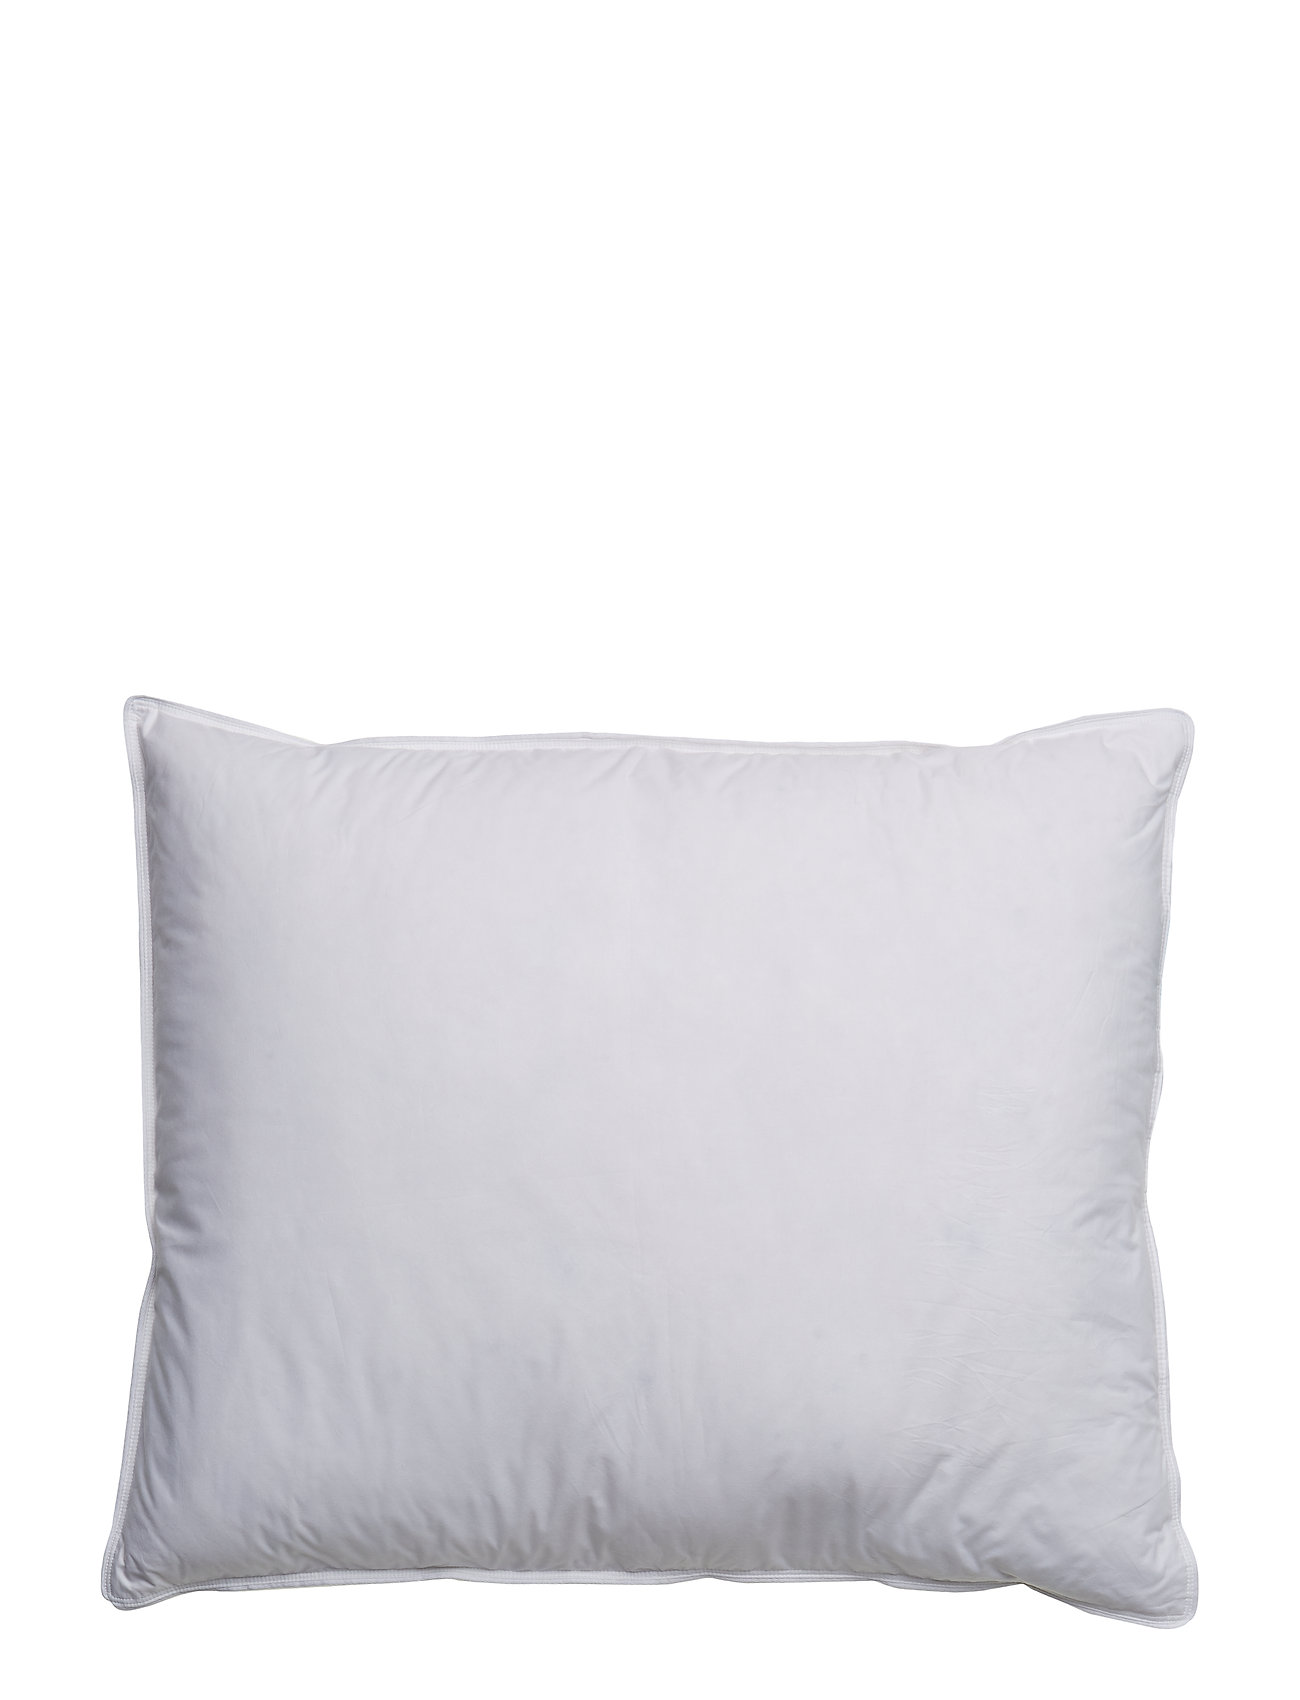 Quilts of Denmark Nænsom Low 3 chamber pillow - WHITE